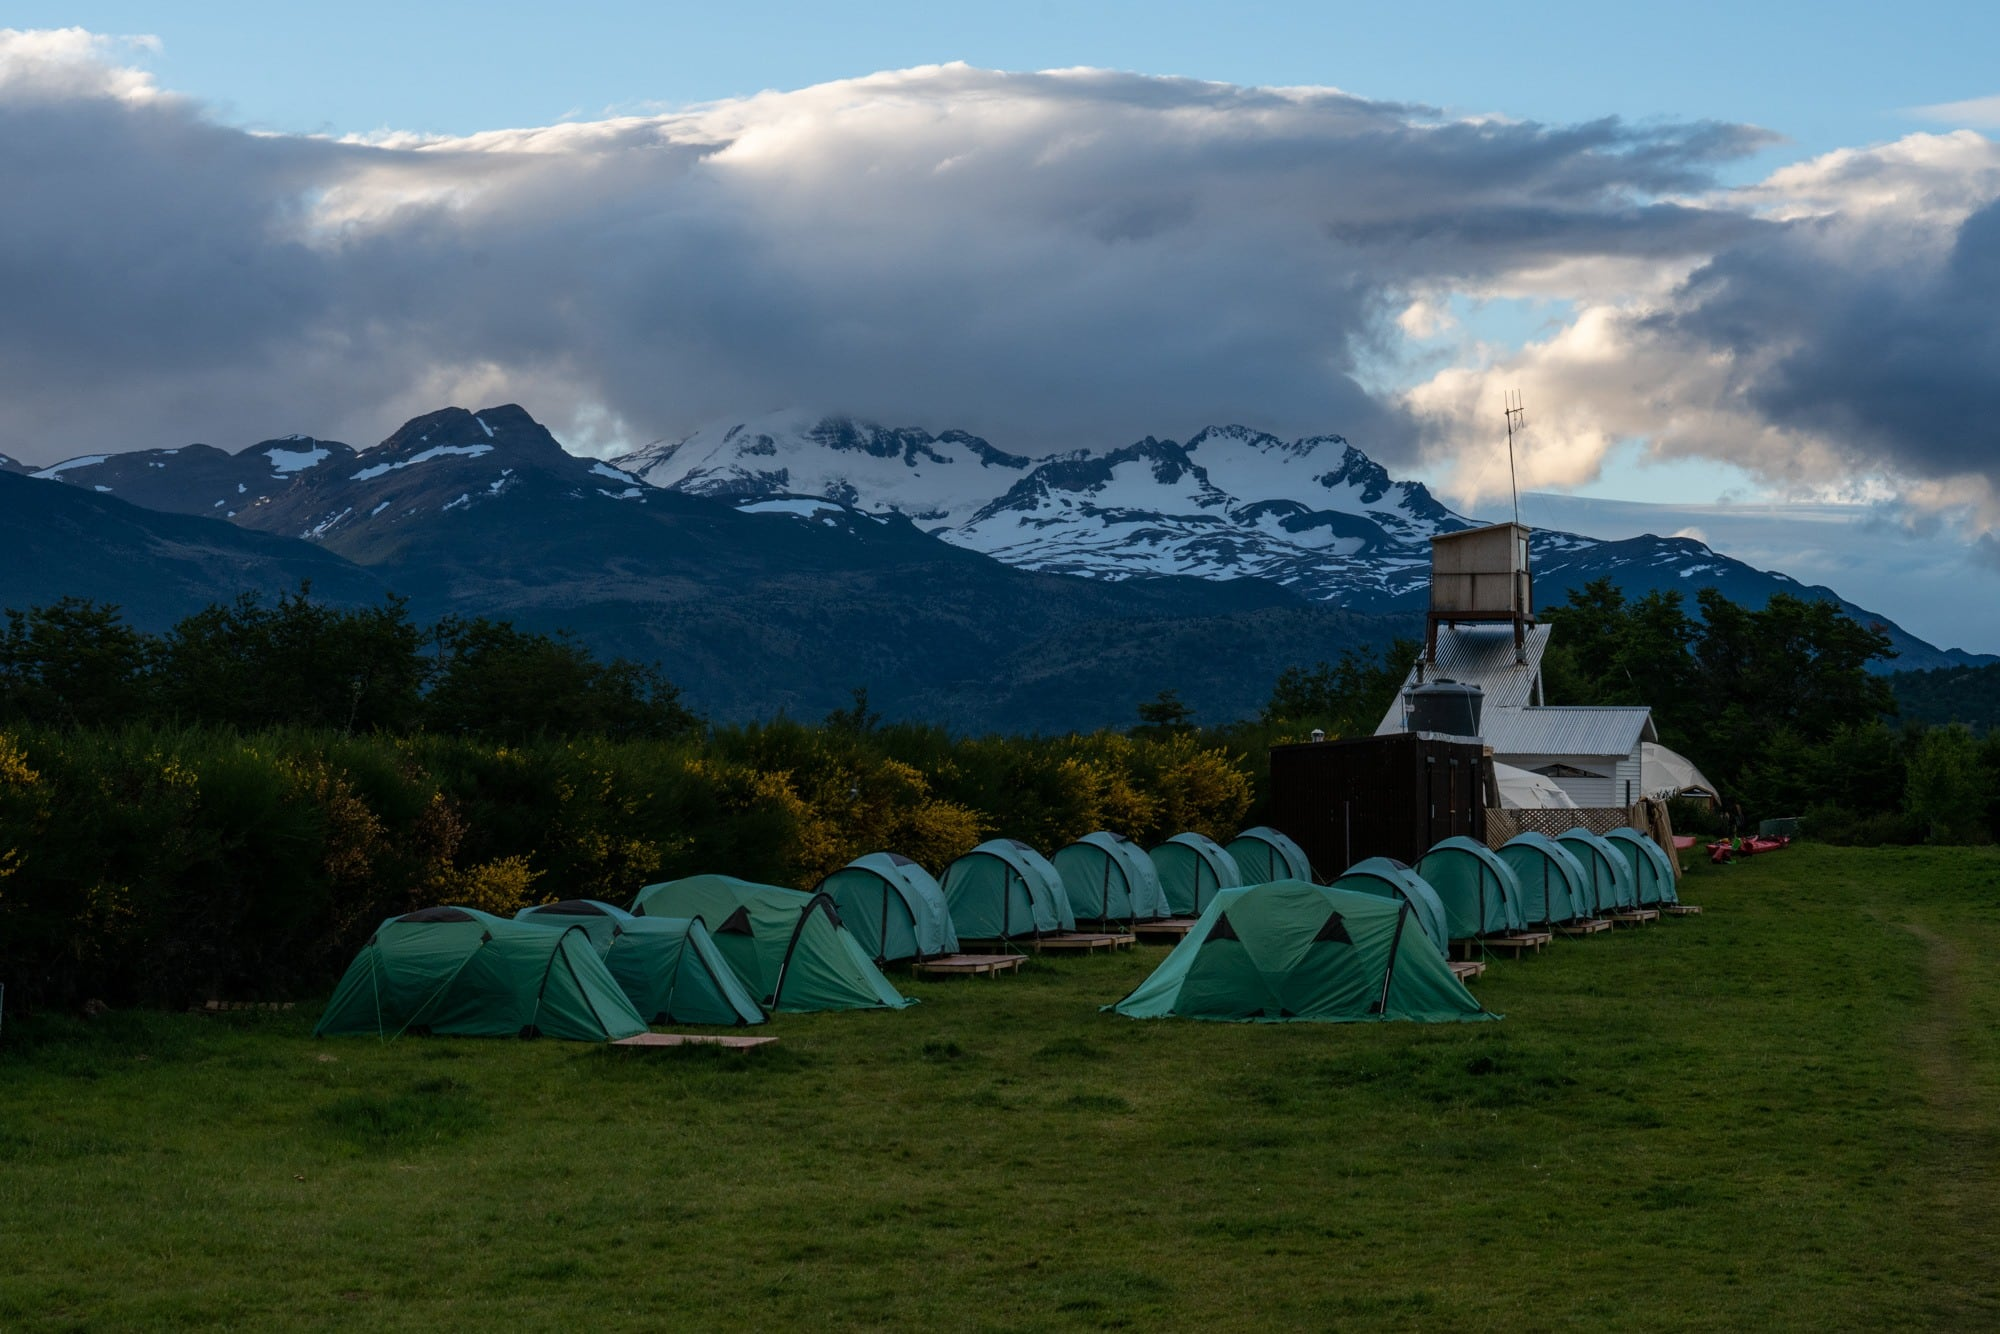 Considering G Adventures for a group tour? Learn the pros & cons in this G Adventures review from my trip on their 14-day Hiking Patagonia in Depth itinerary.